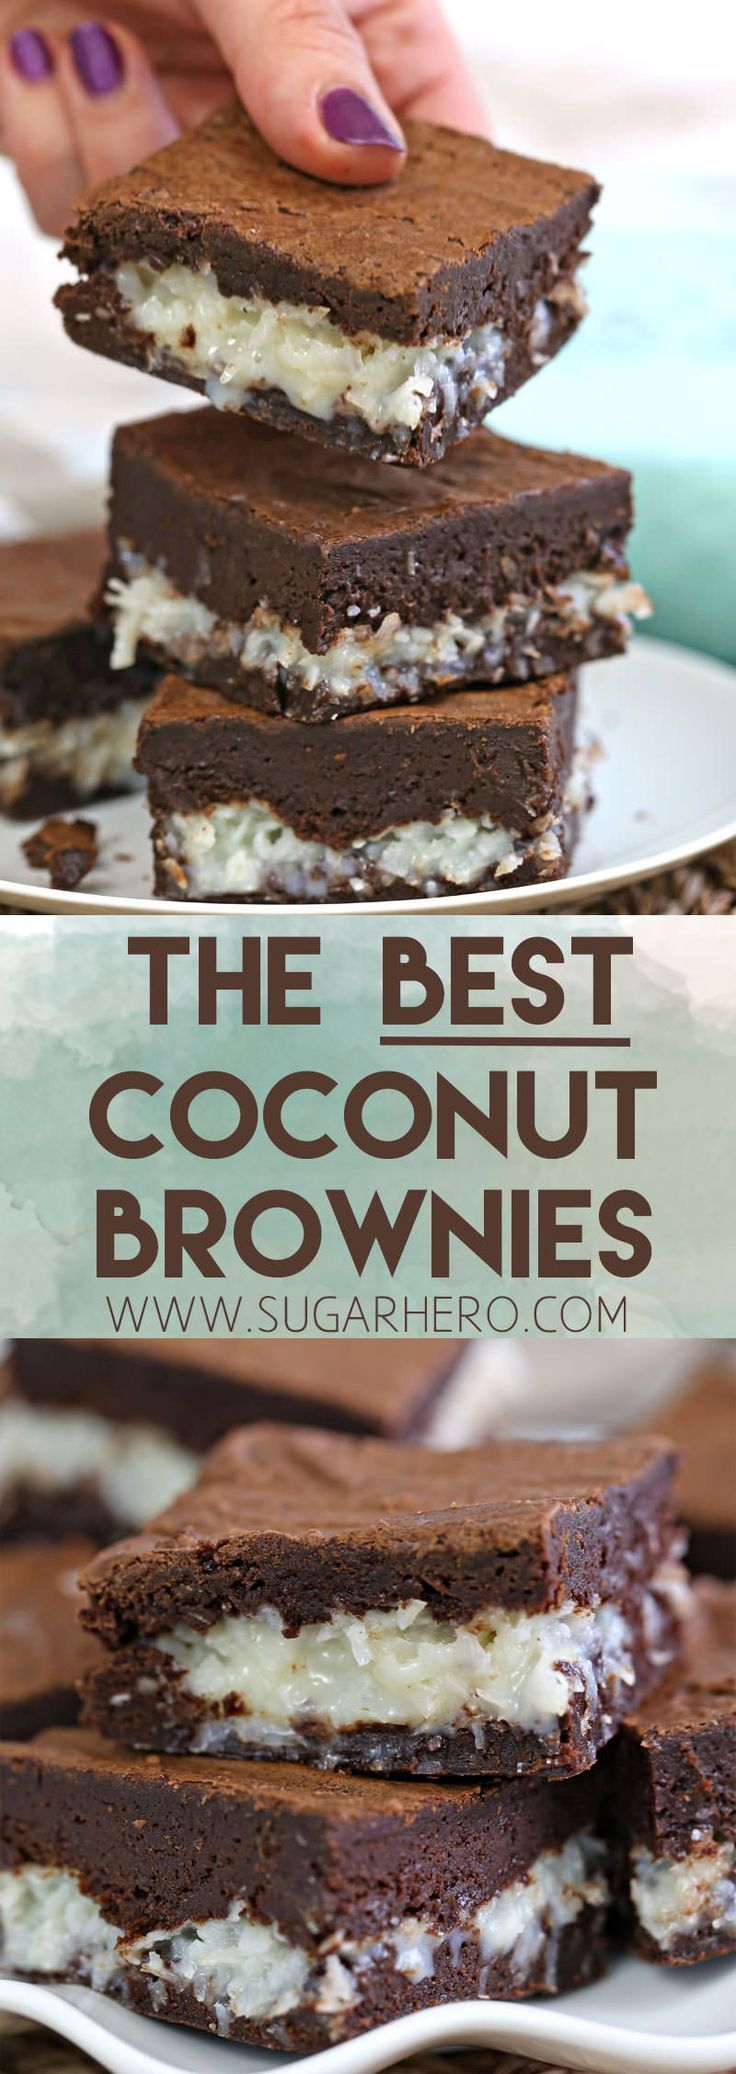 The BEST Coconut Brownies! Rich, fudgy brownies and a gooey coconut center. Better than a candy bar! | From SugarHero.com #SugarHero #brownies